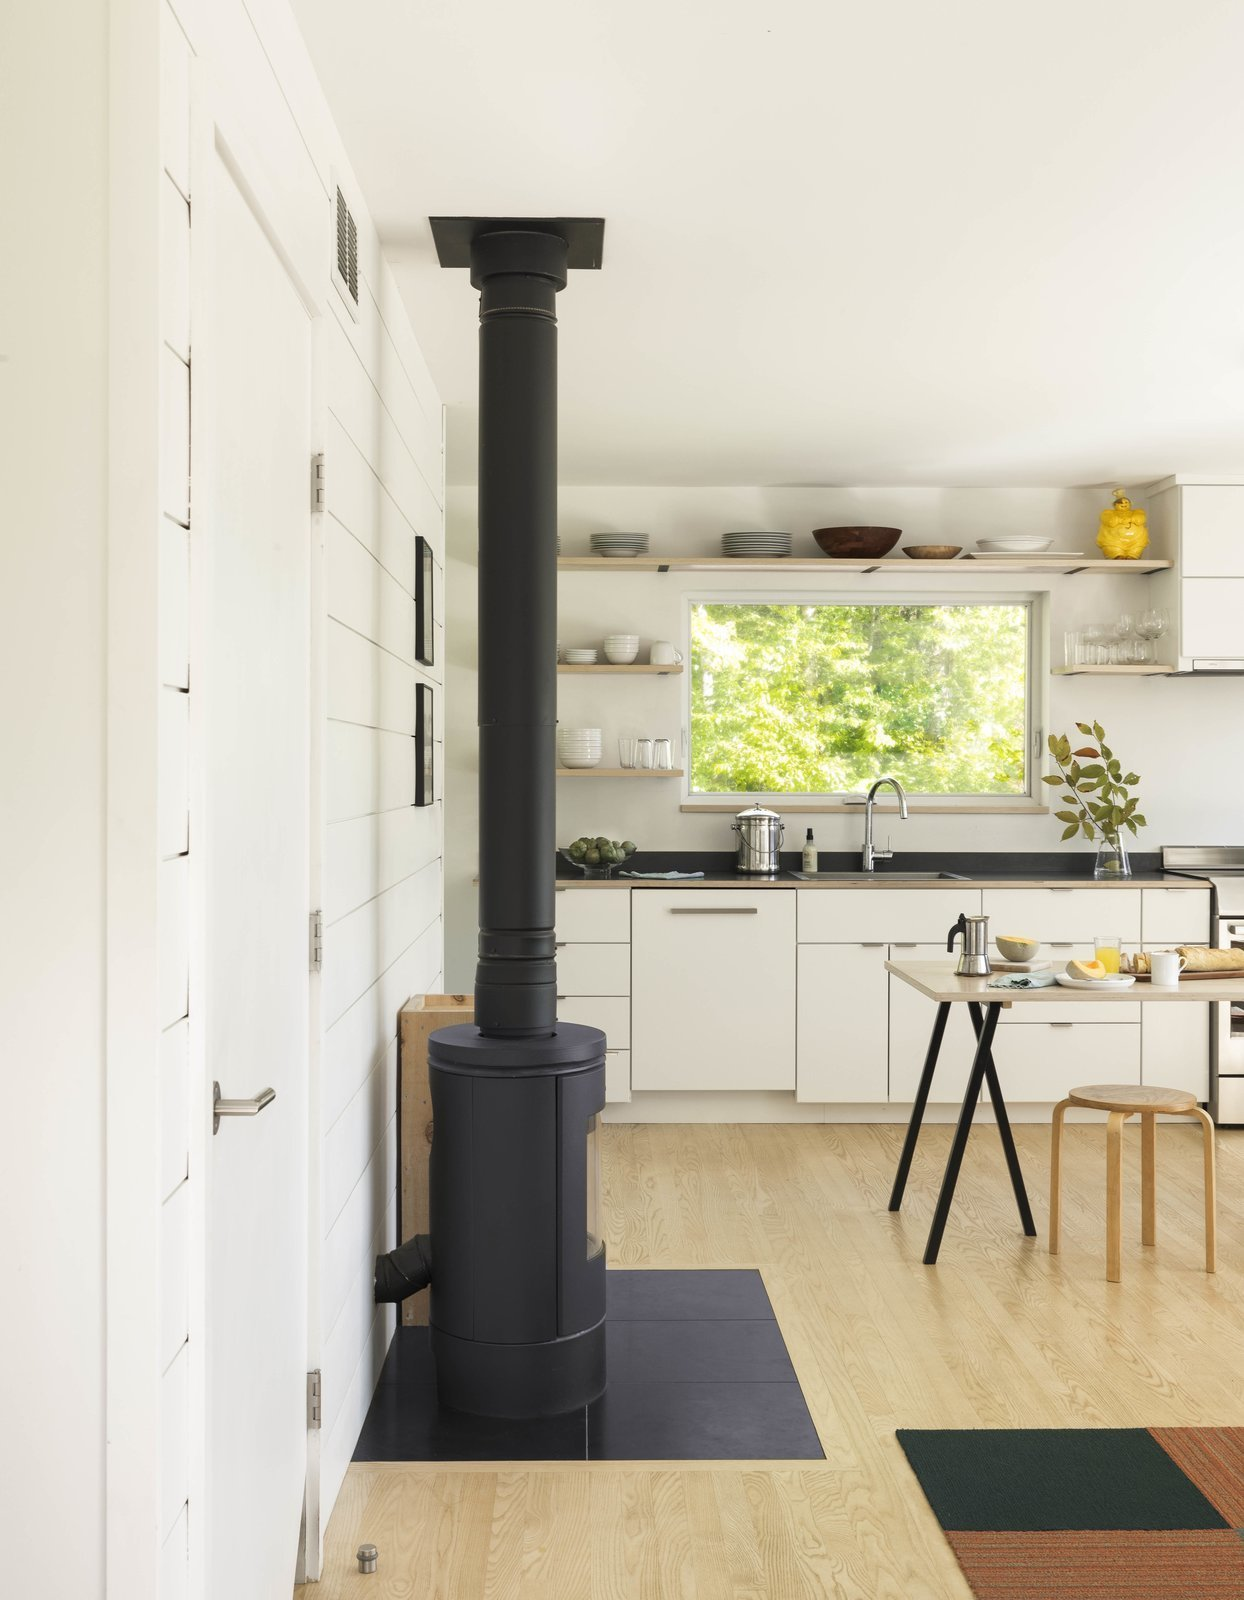 Kitchen, Laminate Counter, Drop In Sink, Wood Cabinet, White Cabinet, Light Hardwood Floor, Open Cabinet, and Dishwasher  Photo 10 of 13 in A Little Black Cabin Keeps Things Simple for a Family of Four in Vermont